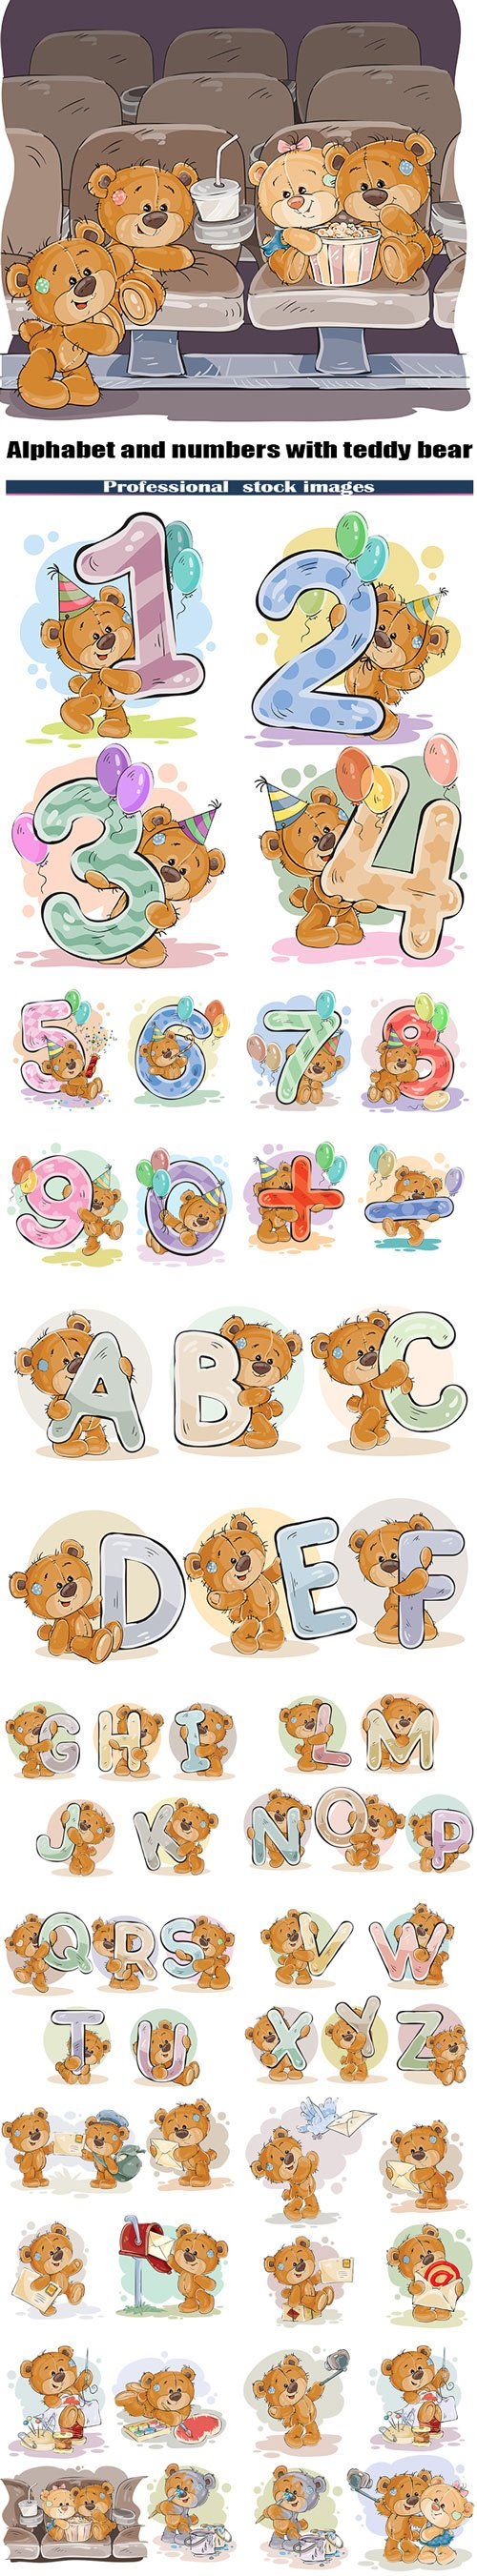 Letters of the English alphabet and numbers with funny teddy bear